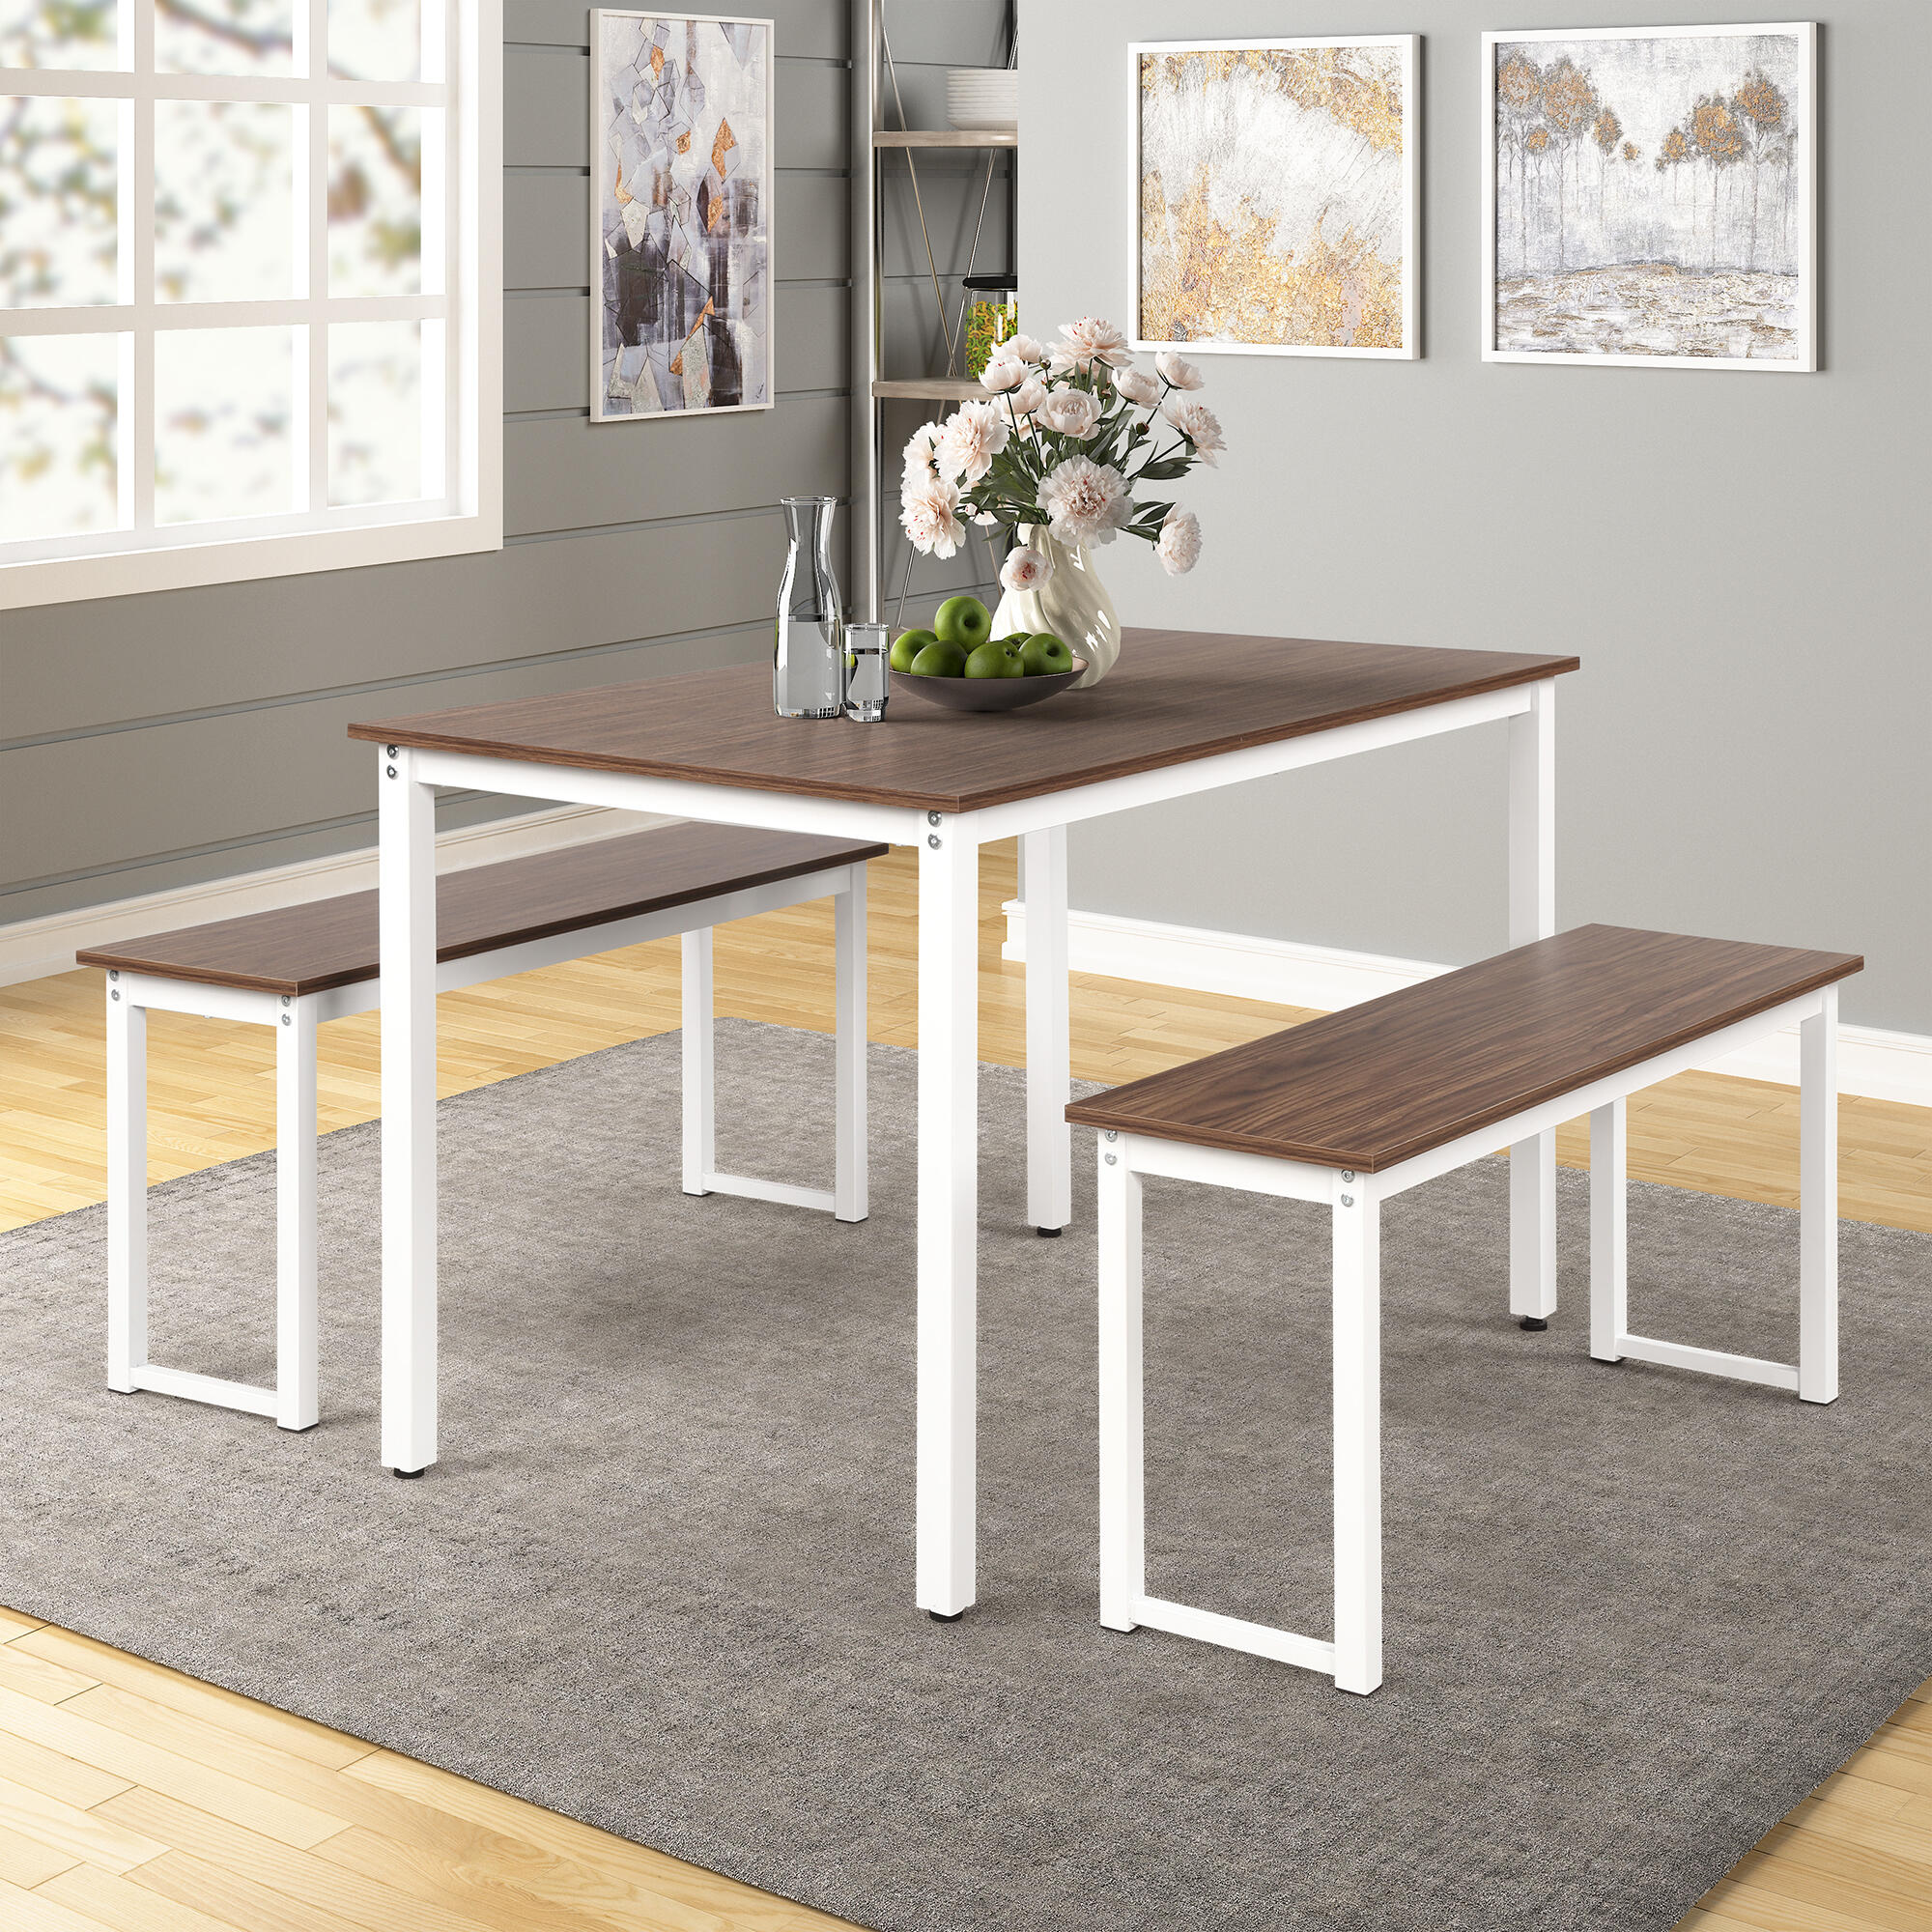 Harper & Bright 3-Piece Dining Table Set with 2 Benches